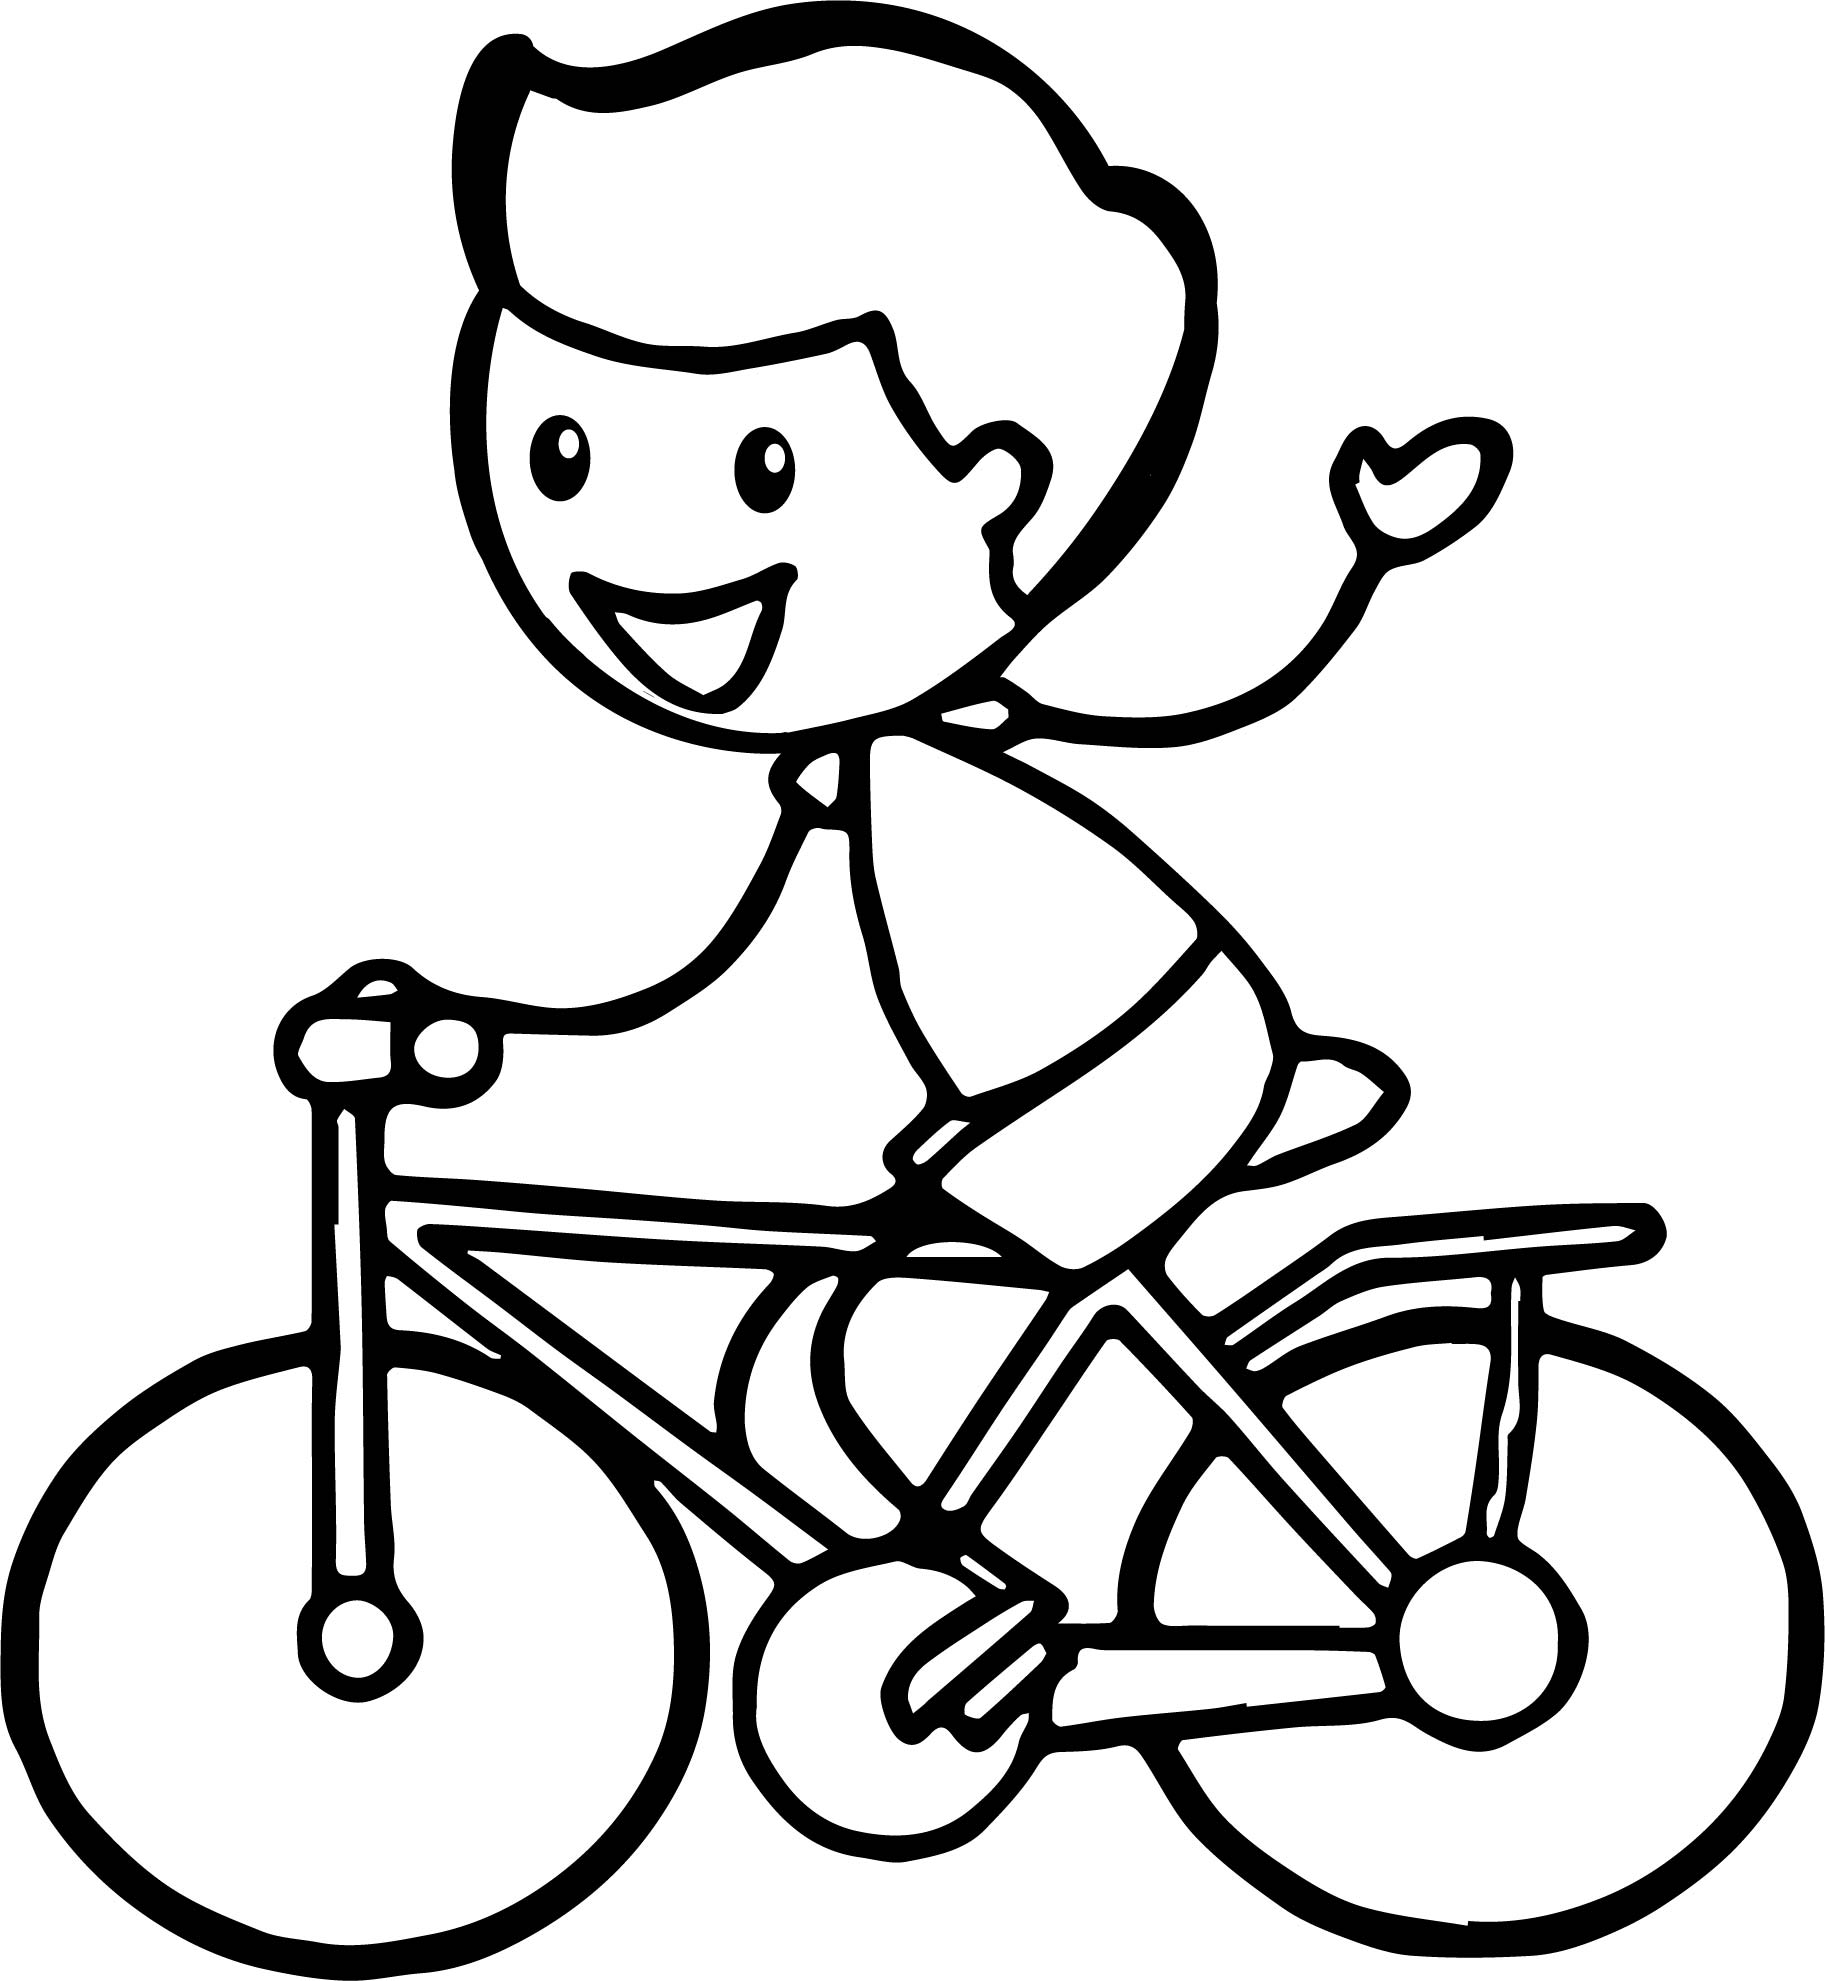 stick figure boy cycling riding biycle coloring page wecoloringpage